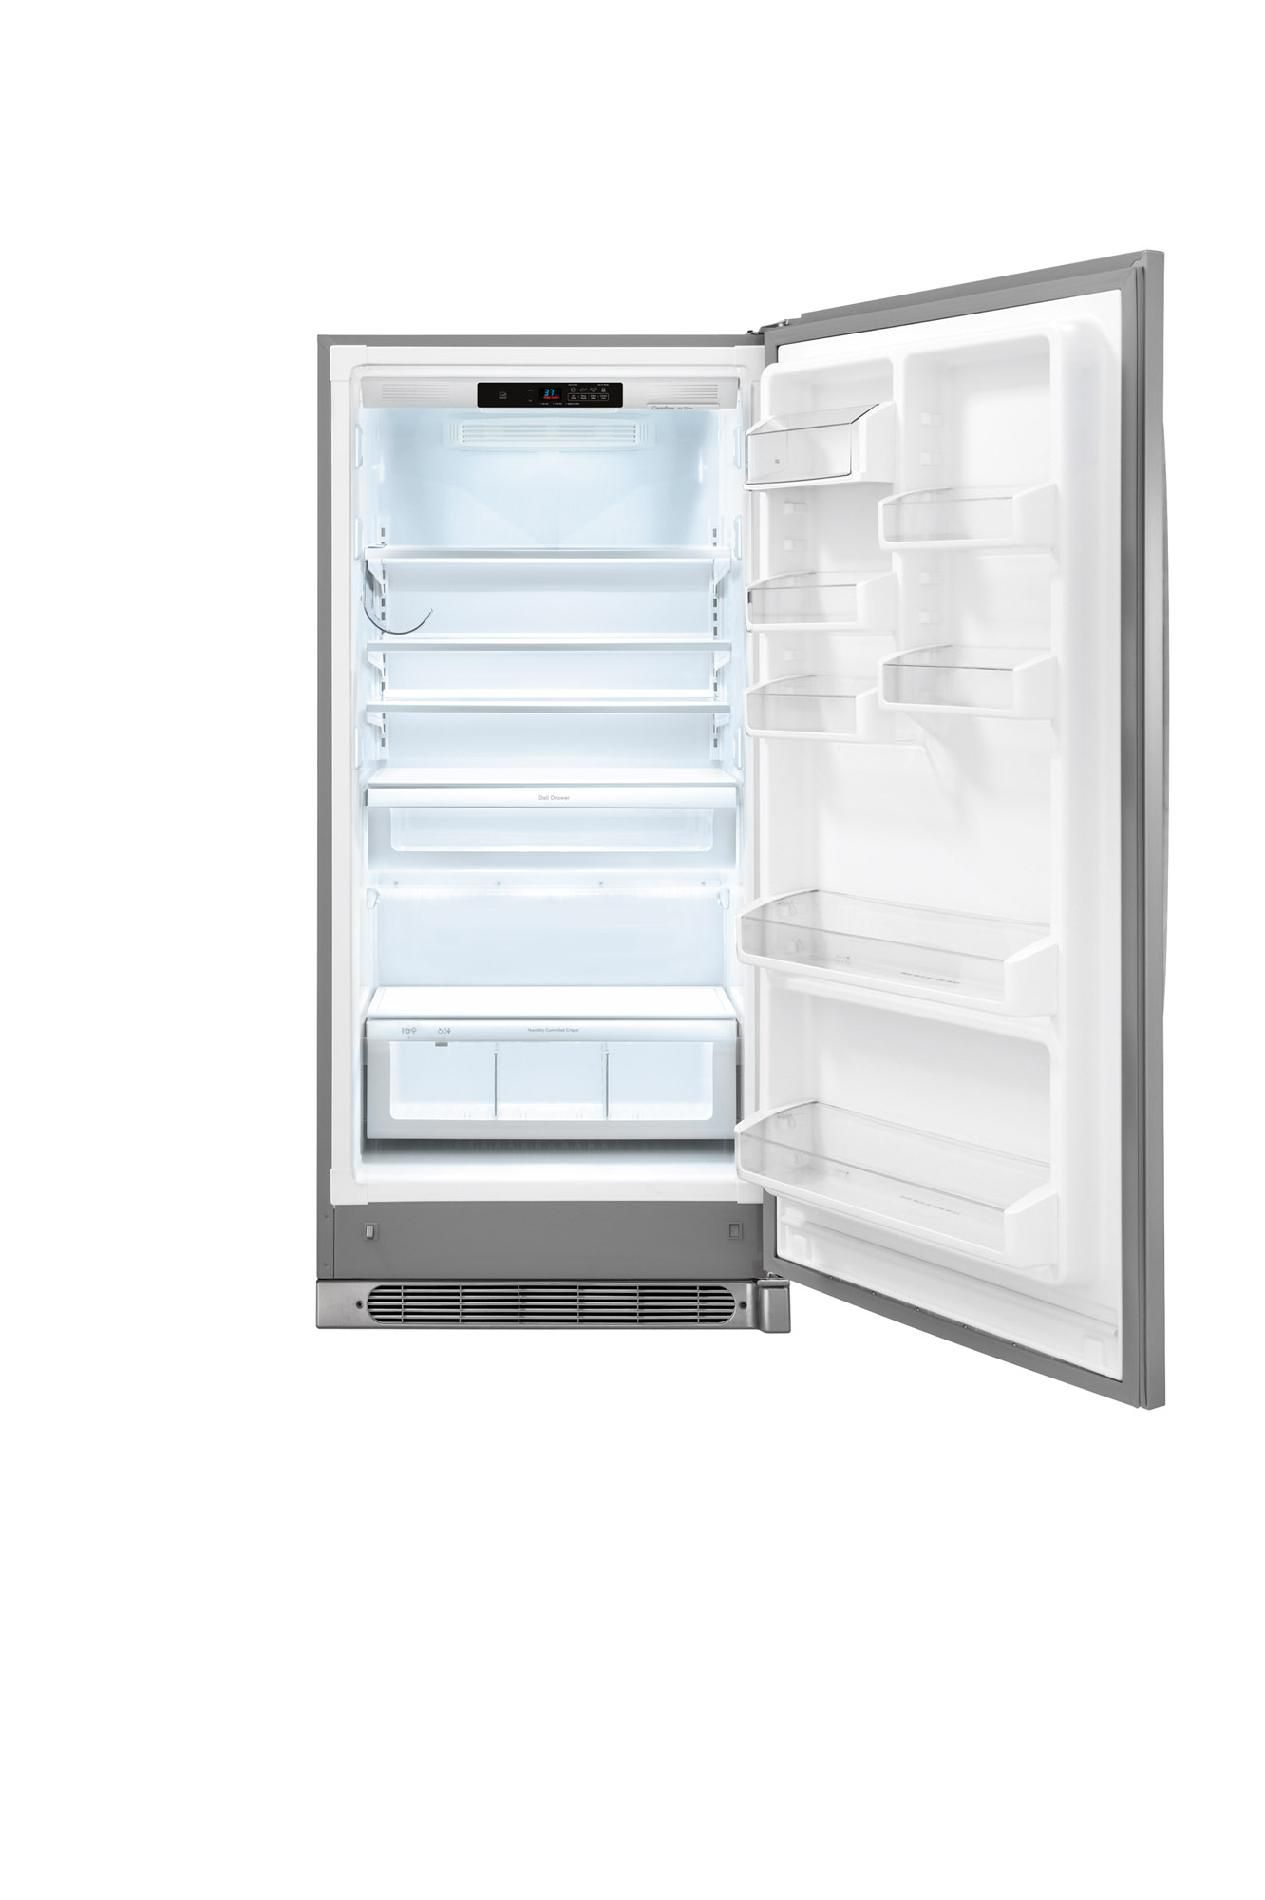 Kenmore Elite 18.6 cu. ft. Built-In All-Refrigerator - Stainless Steel